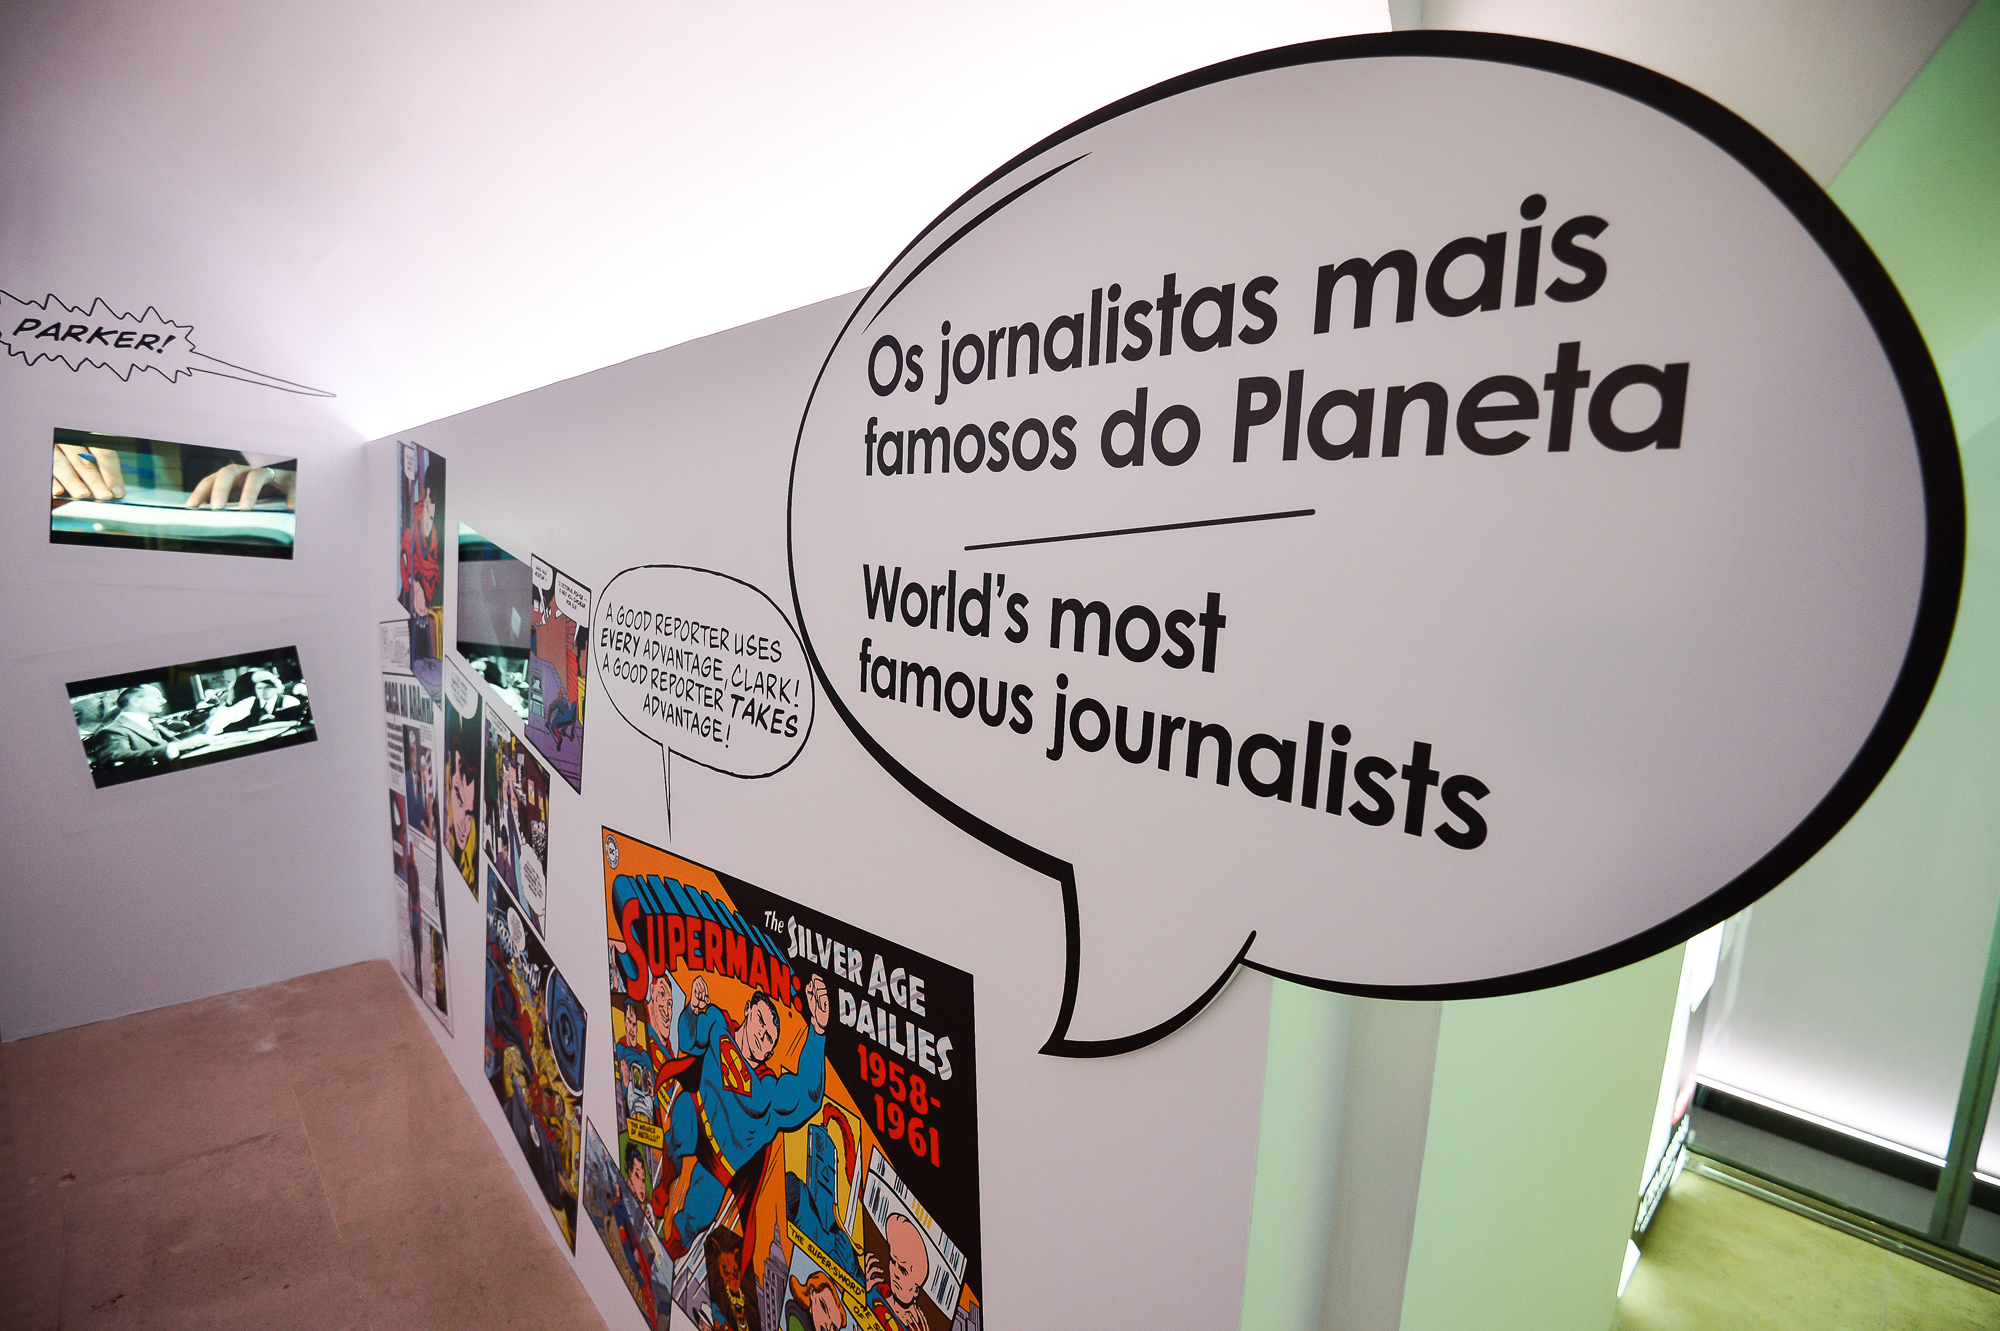 The Most Famous Journalists of the Planet? | NewsMuseum